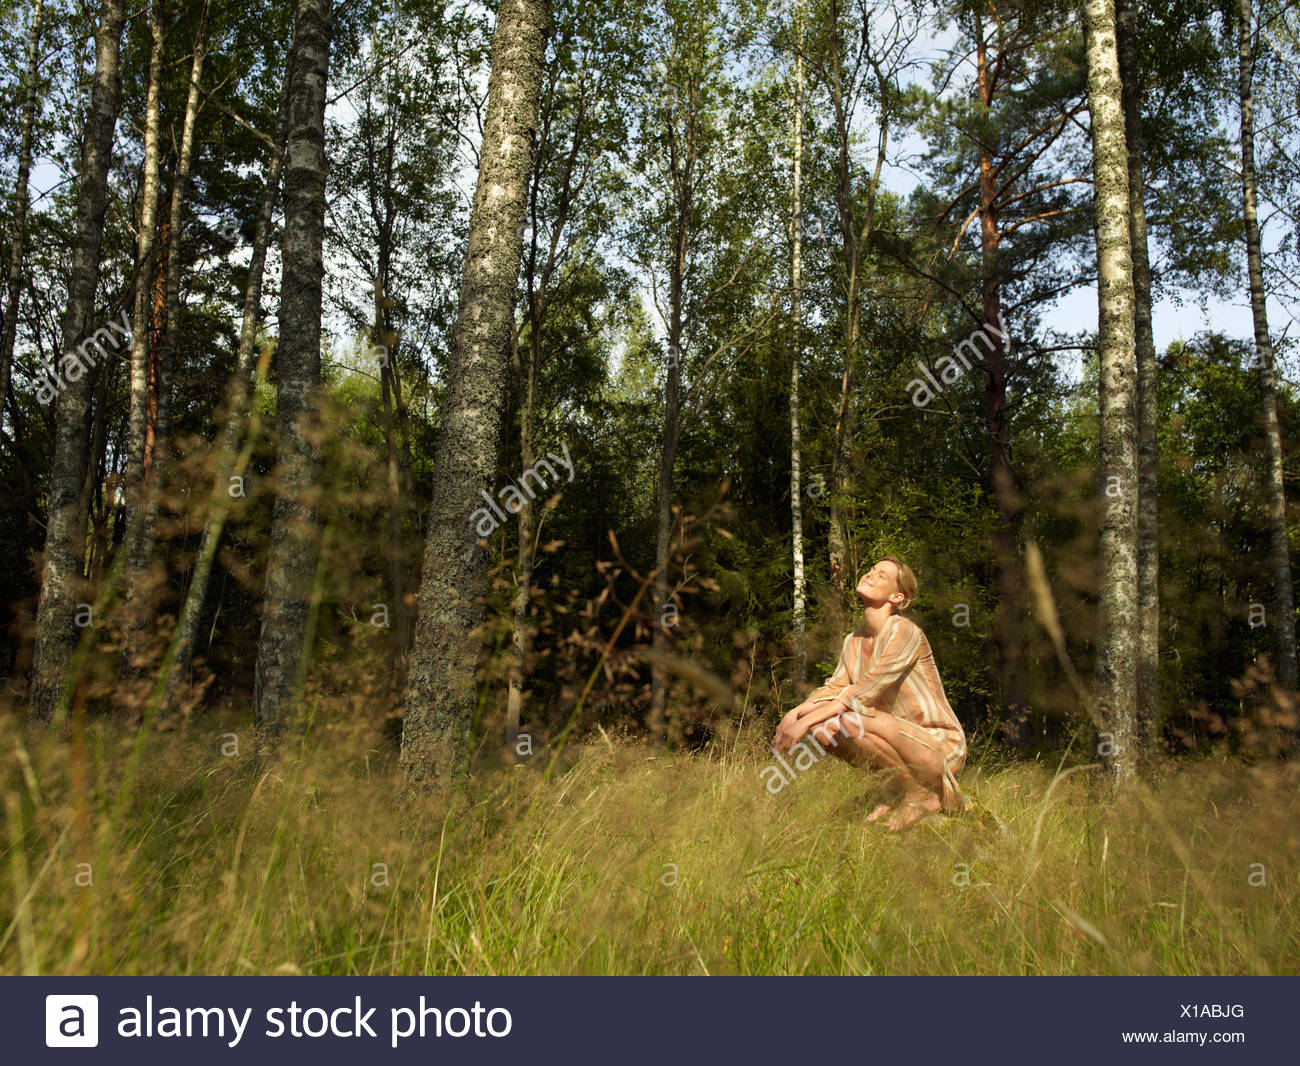 Woman crouching on a large rock in forest smiling. - Stock Image